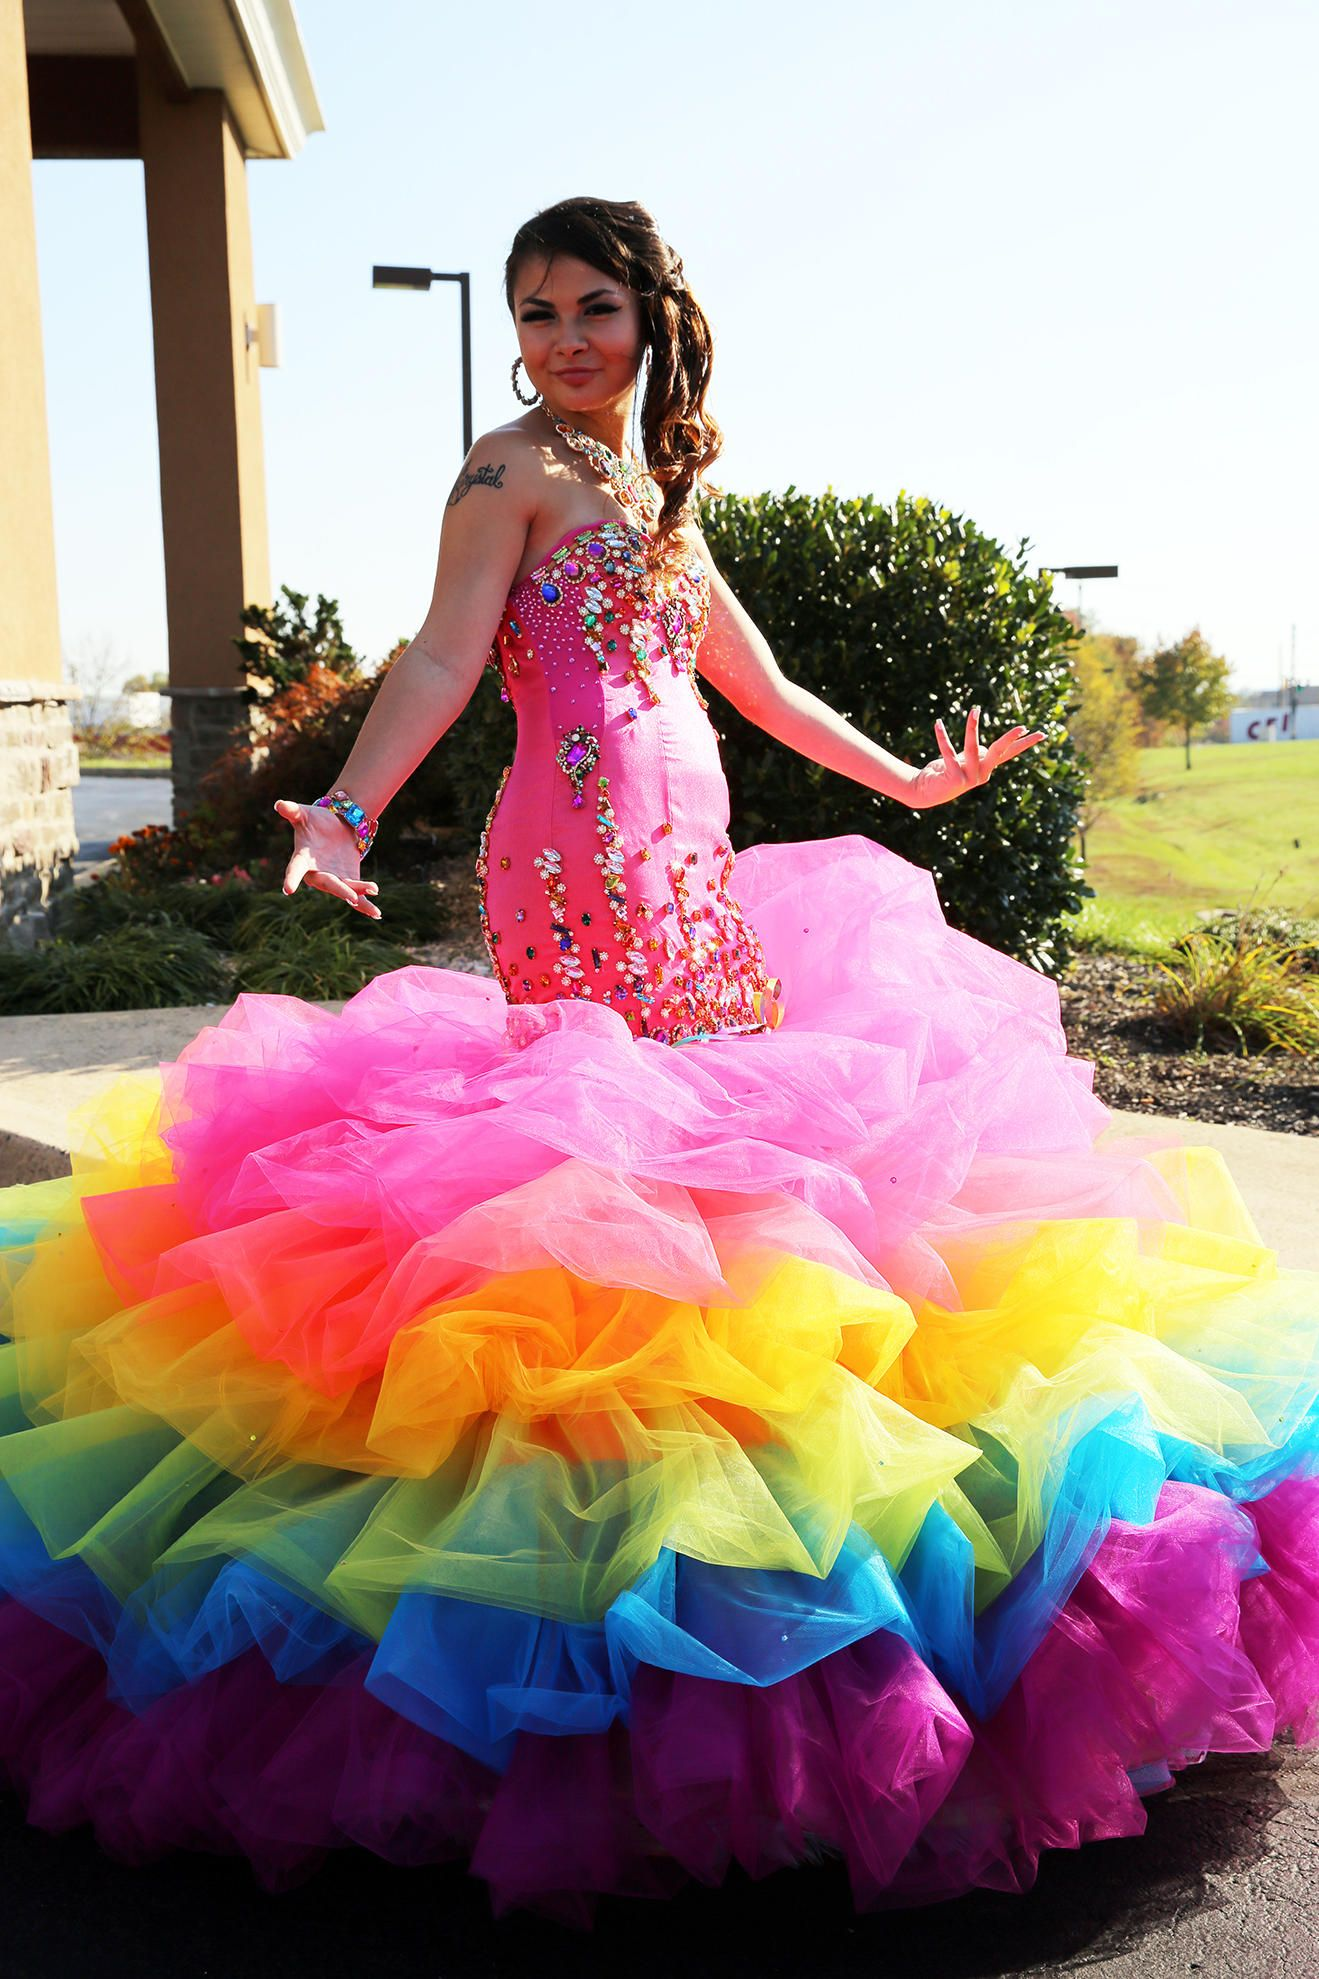 Greek wedding and rainbow sweet 16 dress pictures american gypsy greek wedding and rainbow sweet 16 dress pictures junglespirit Gallery